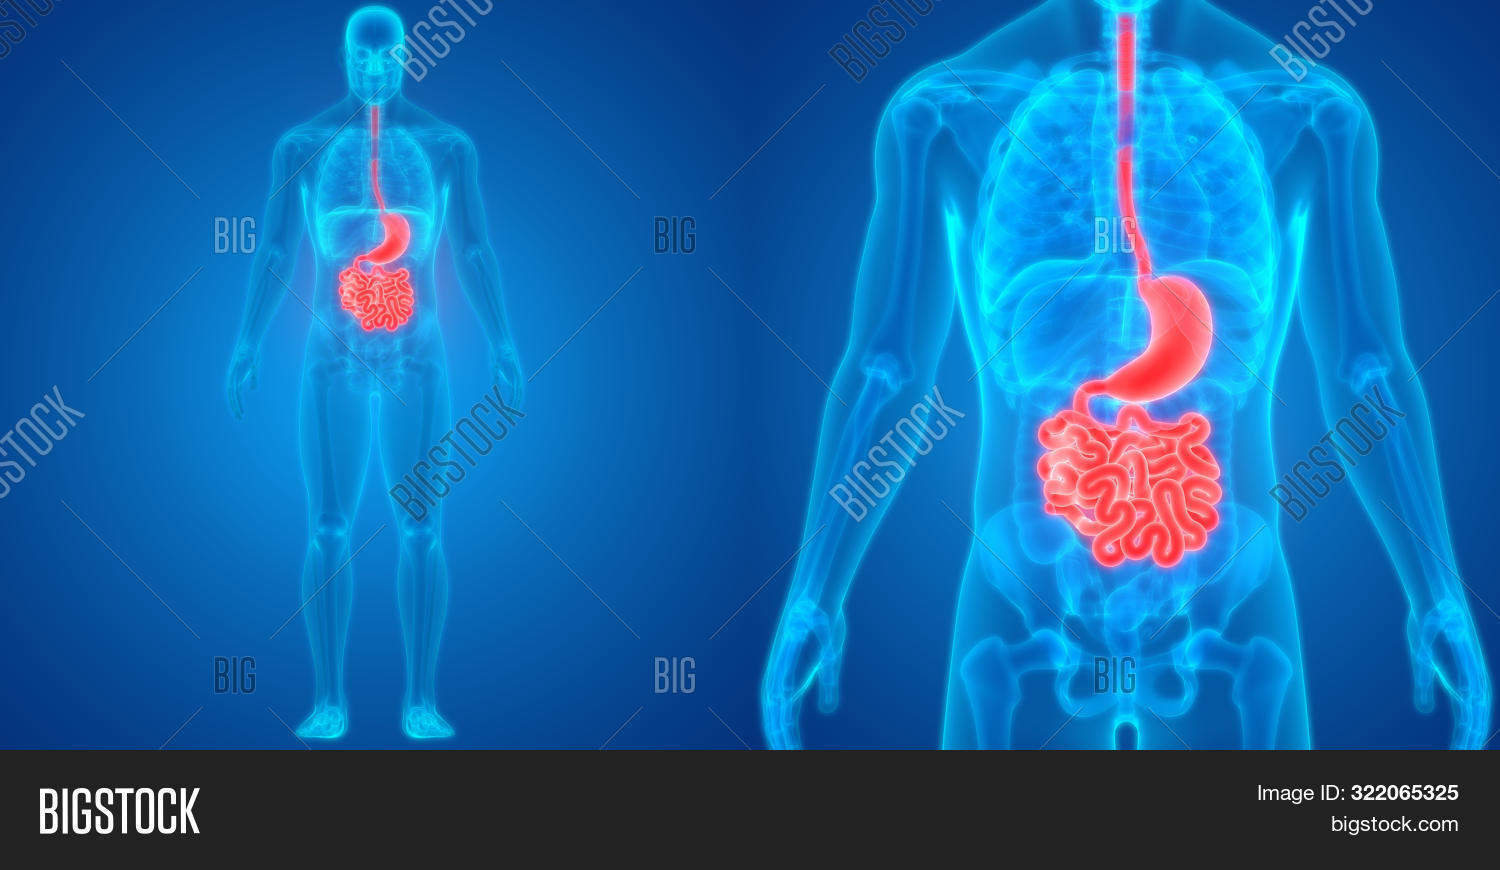 3d,abstract,ache,anatomical,anatomy,anus,appendix,background,biology,blue,body,care,digesting,digestion,digestive,disease,duodenum,eating,esophagus,food,gallbladder,gastric,gut,health,healthy,human,illustration,infographic,internal,intestine,jejunum,large,liver,male,man,medical,medicine,organ,pain,science,small,stomach,surgery,system,x-ray,xray